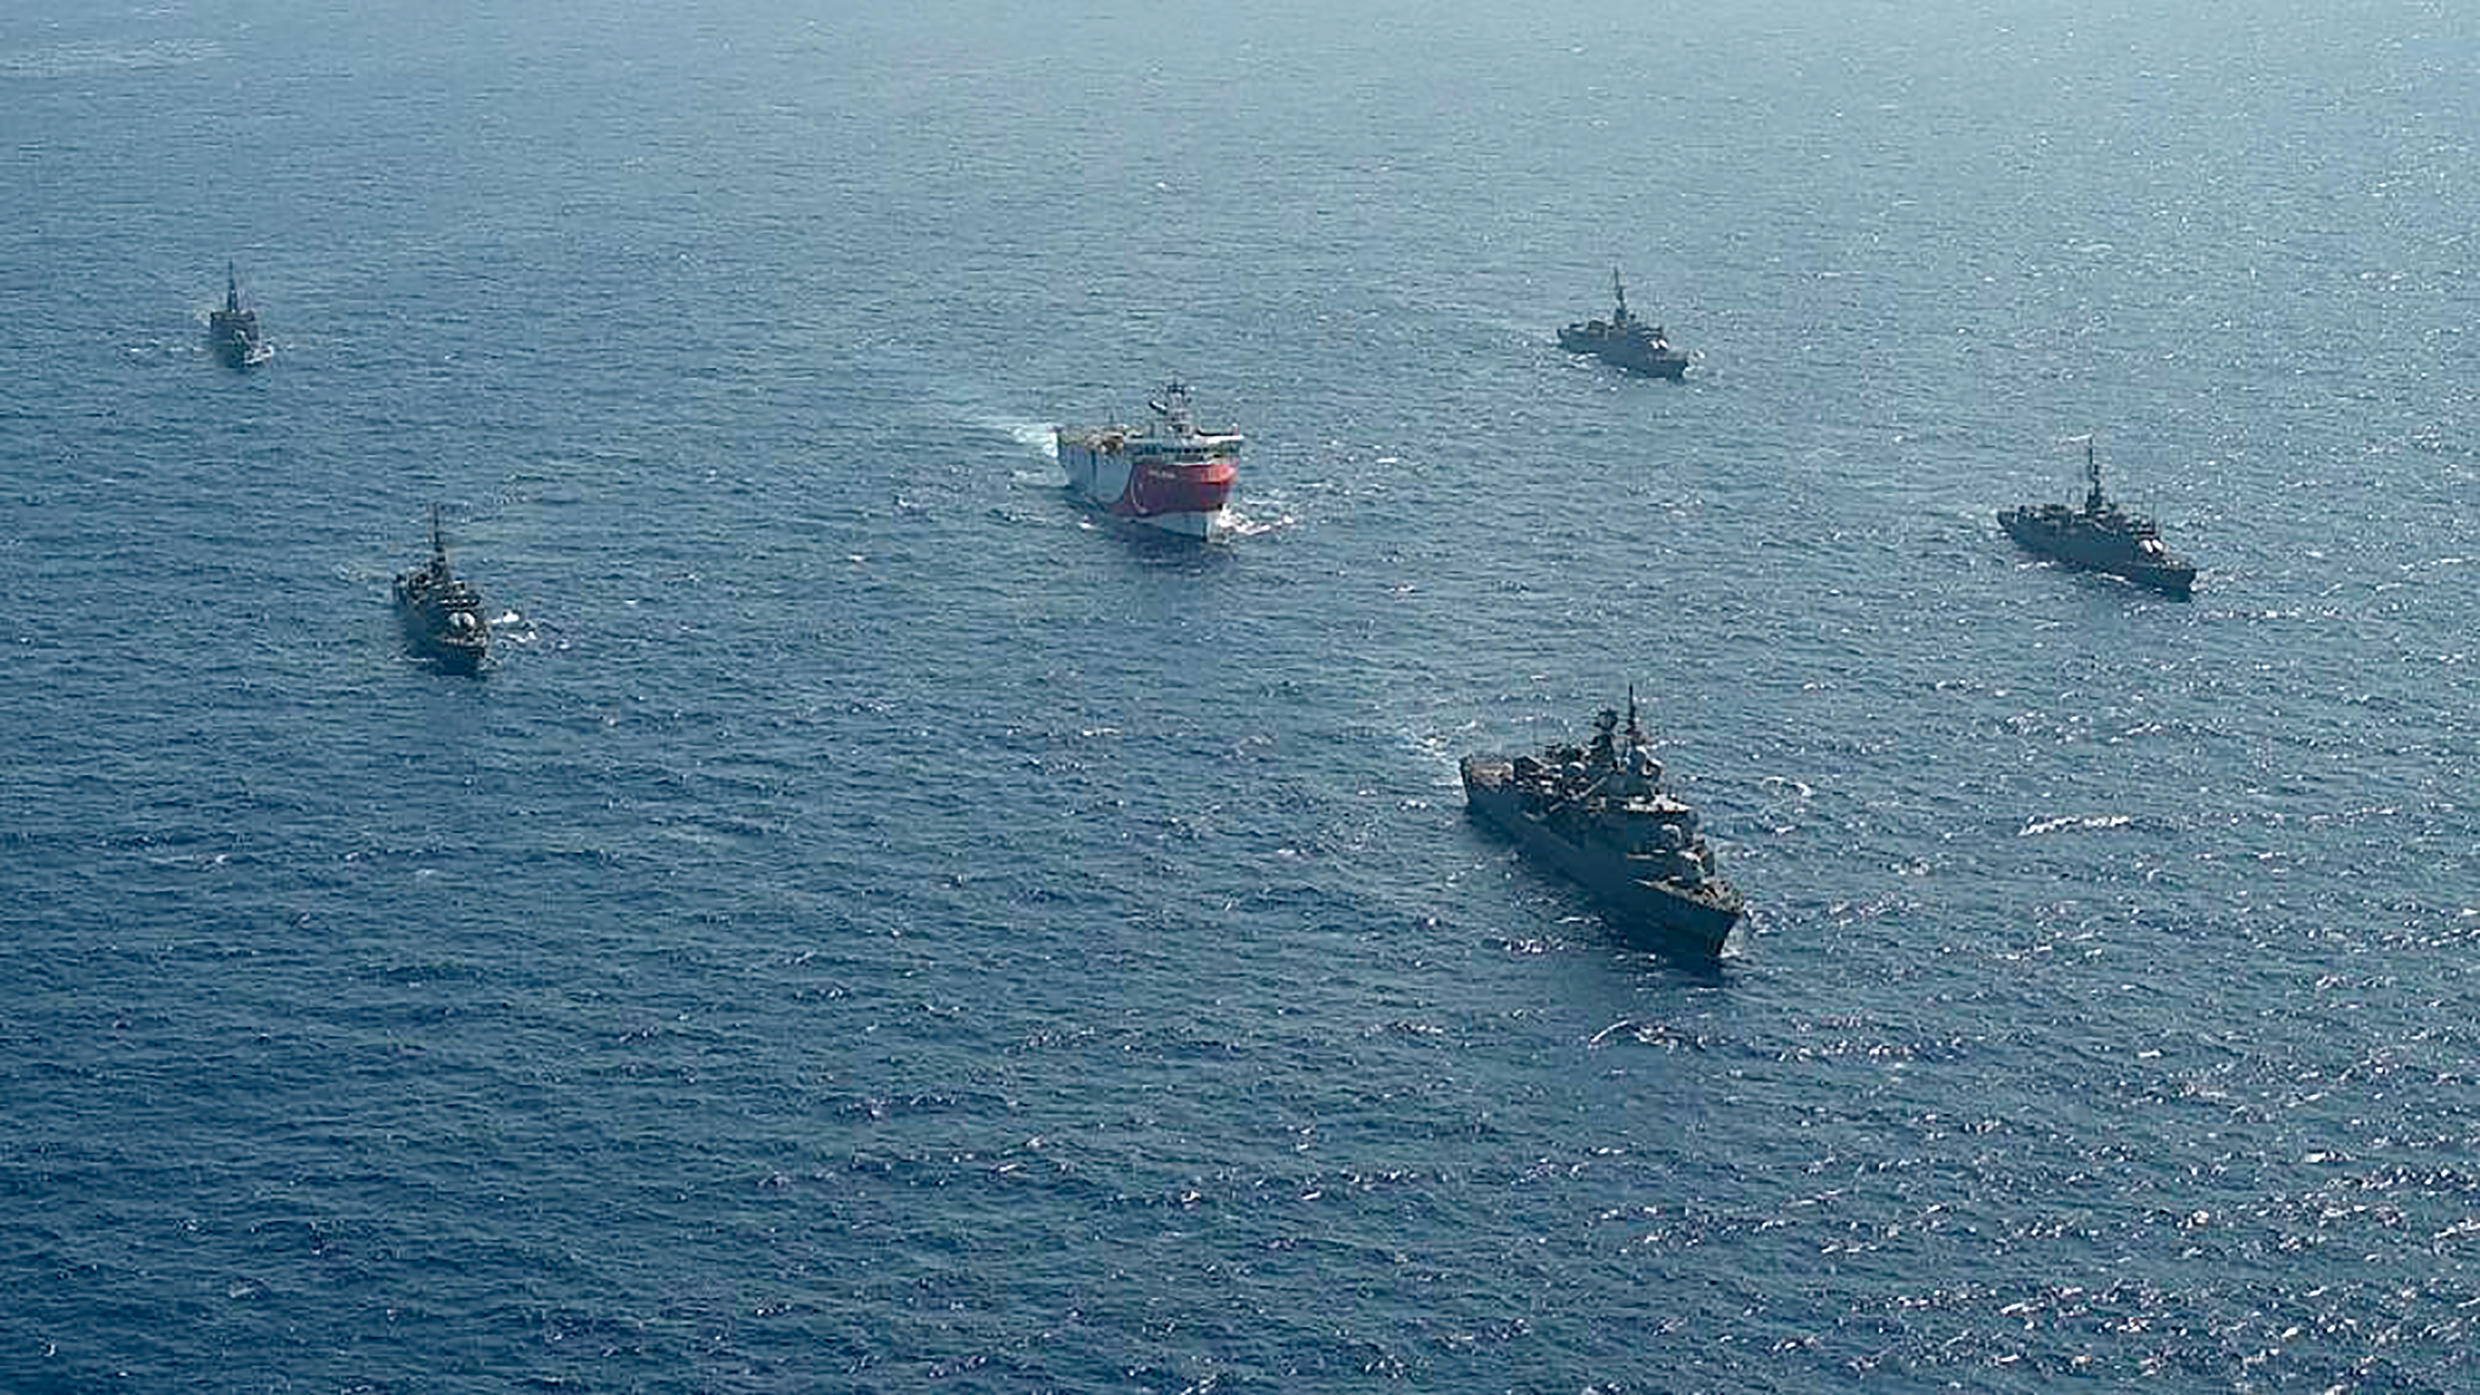 Turkey's Oruc Reis research vessels and its accompanying fleet of five warships in a disputed part of the Mediterranean